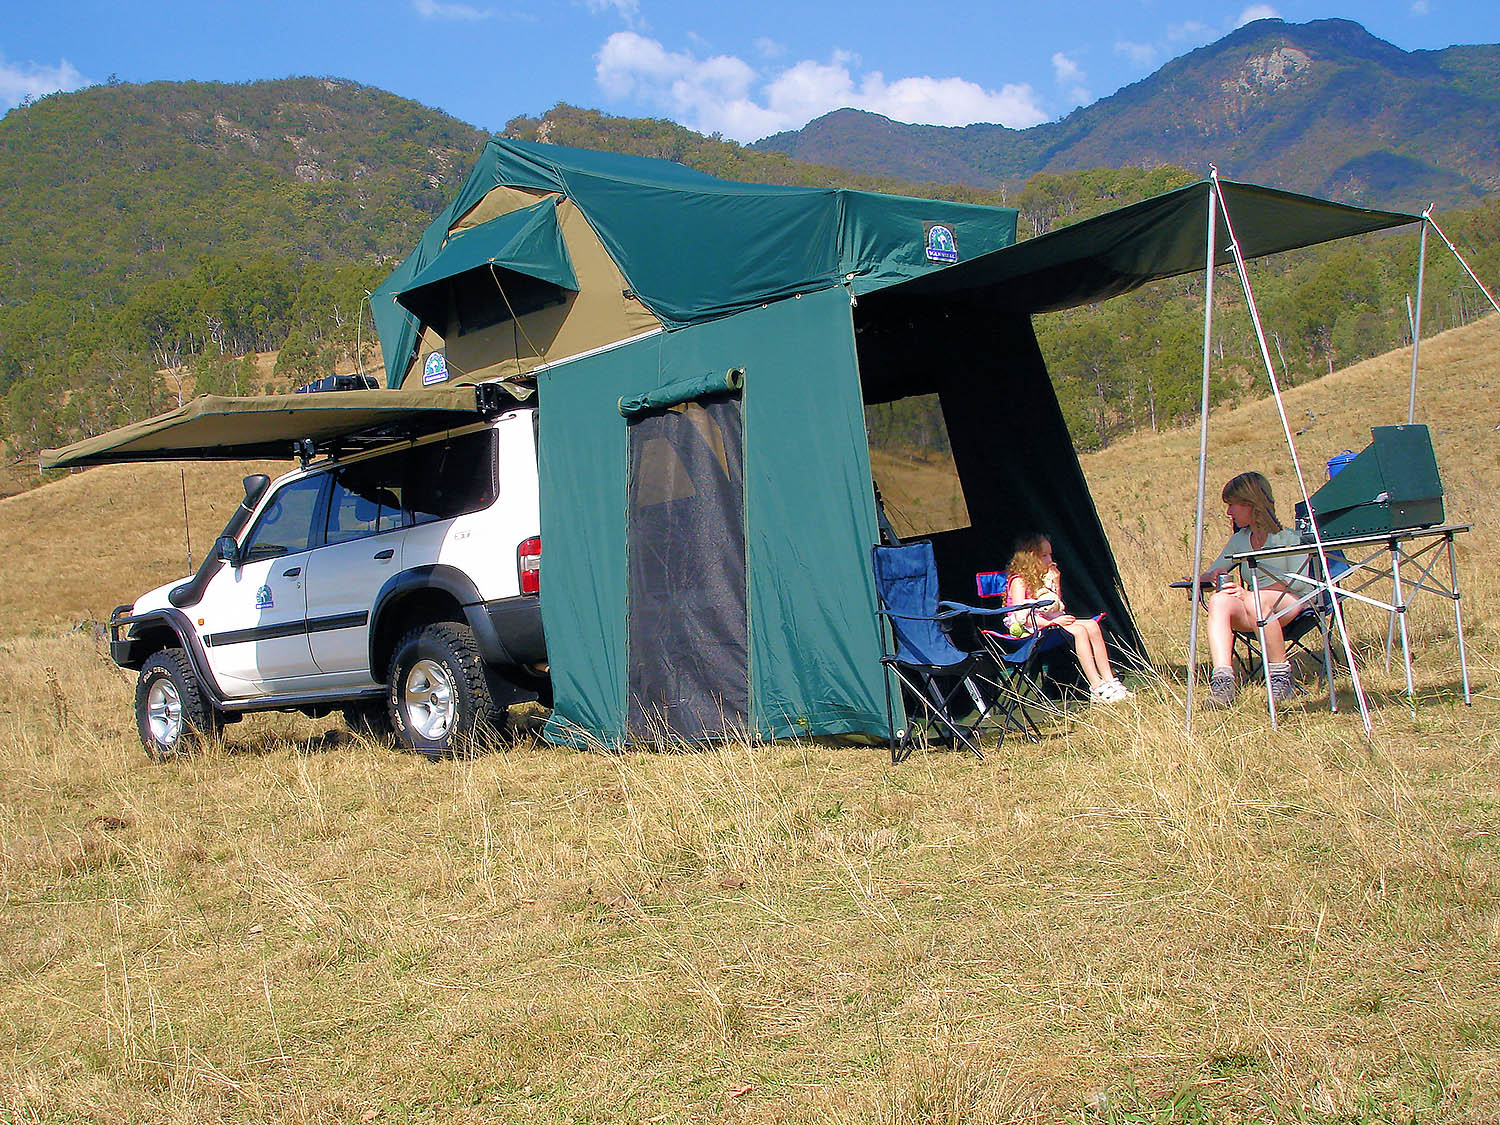 Hannibal Tourer Canvas Tent & Roof Top Tents - Hannibal Safari Equipment